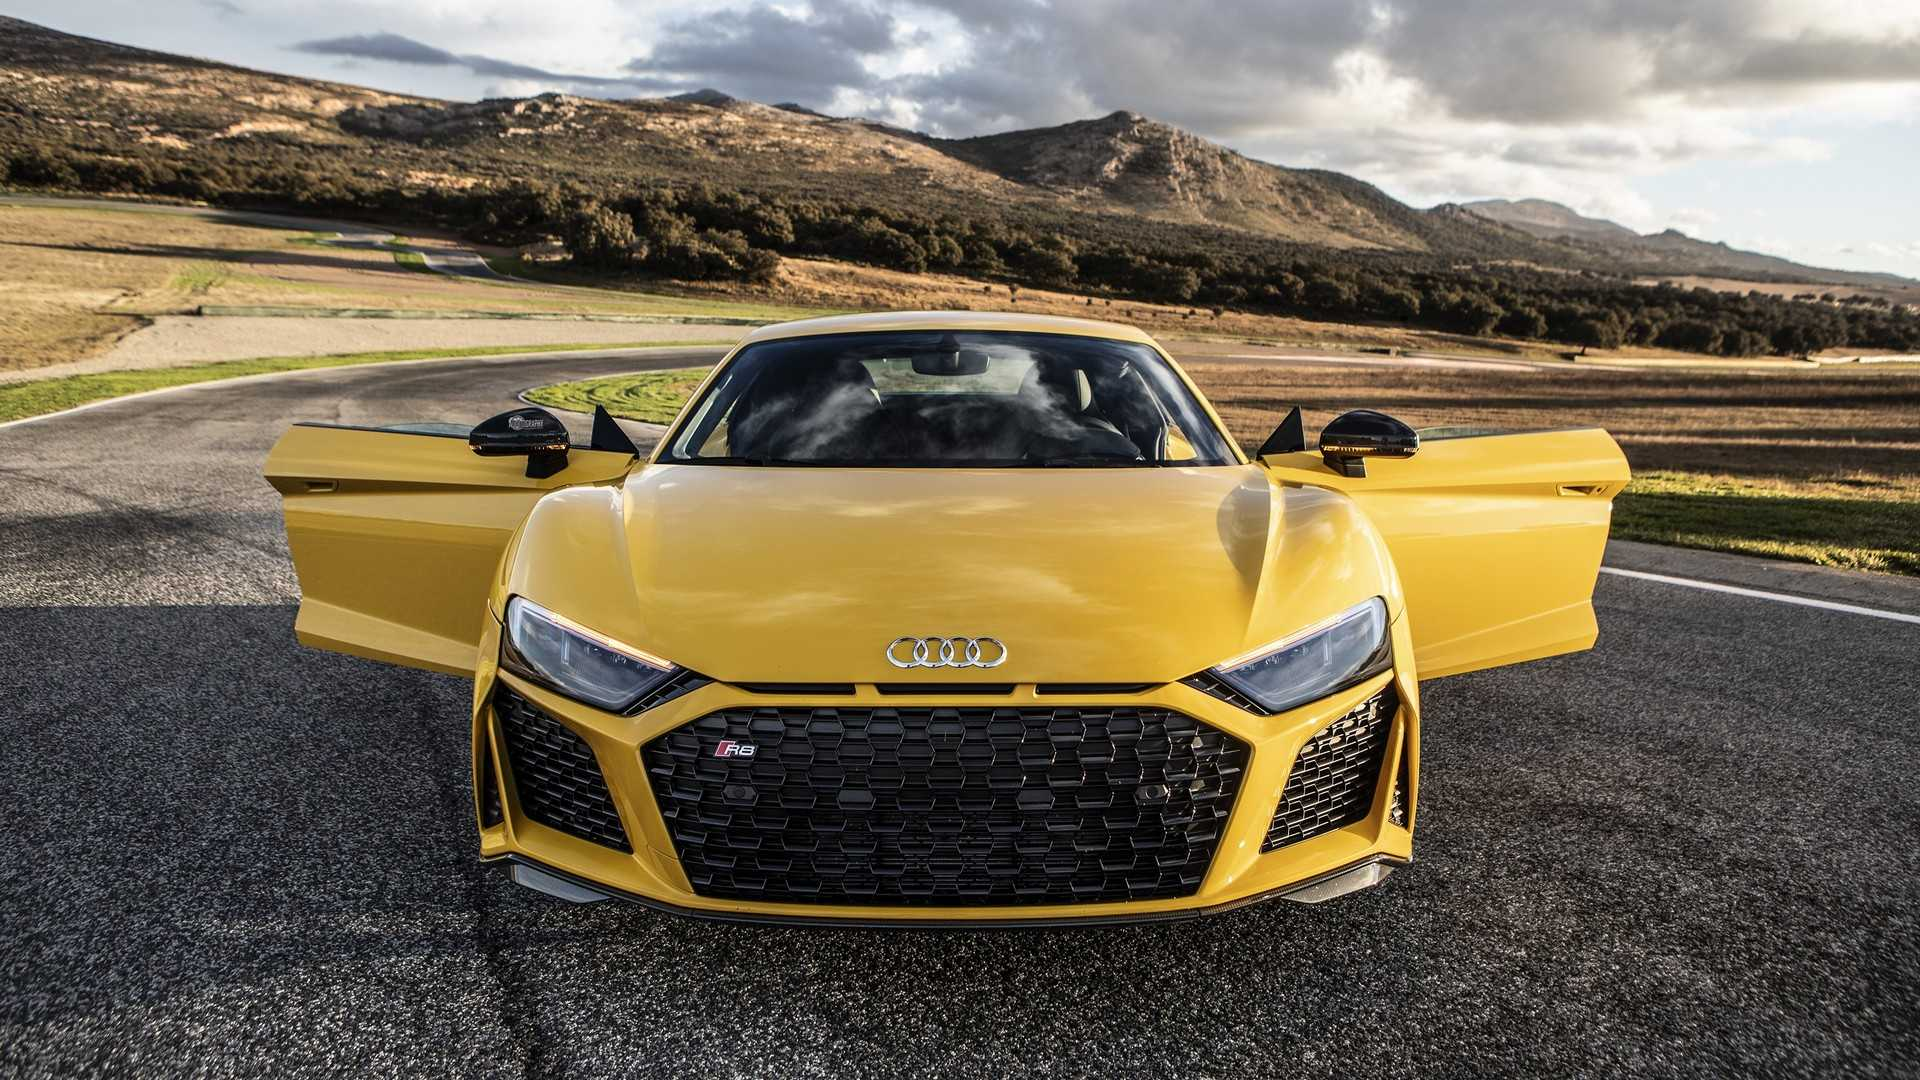 2019 Audi R8 V10 Performance Looks Brutal In Yellow Autoevolution